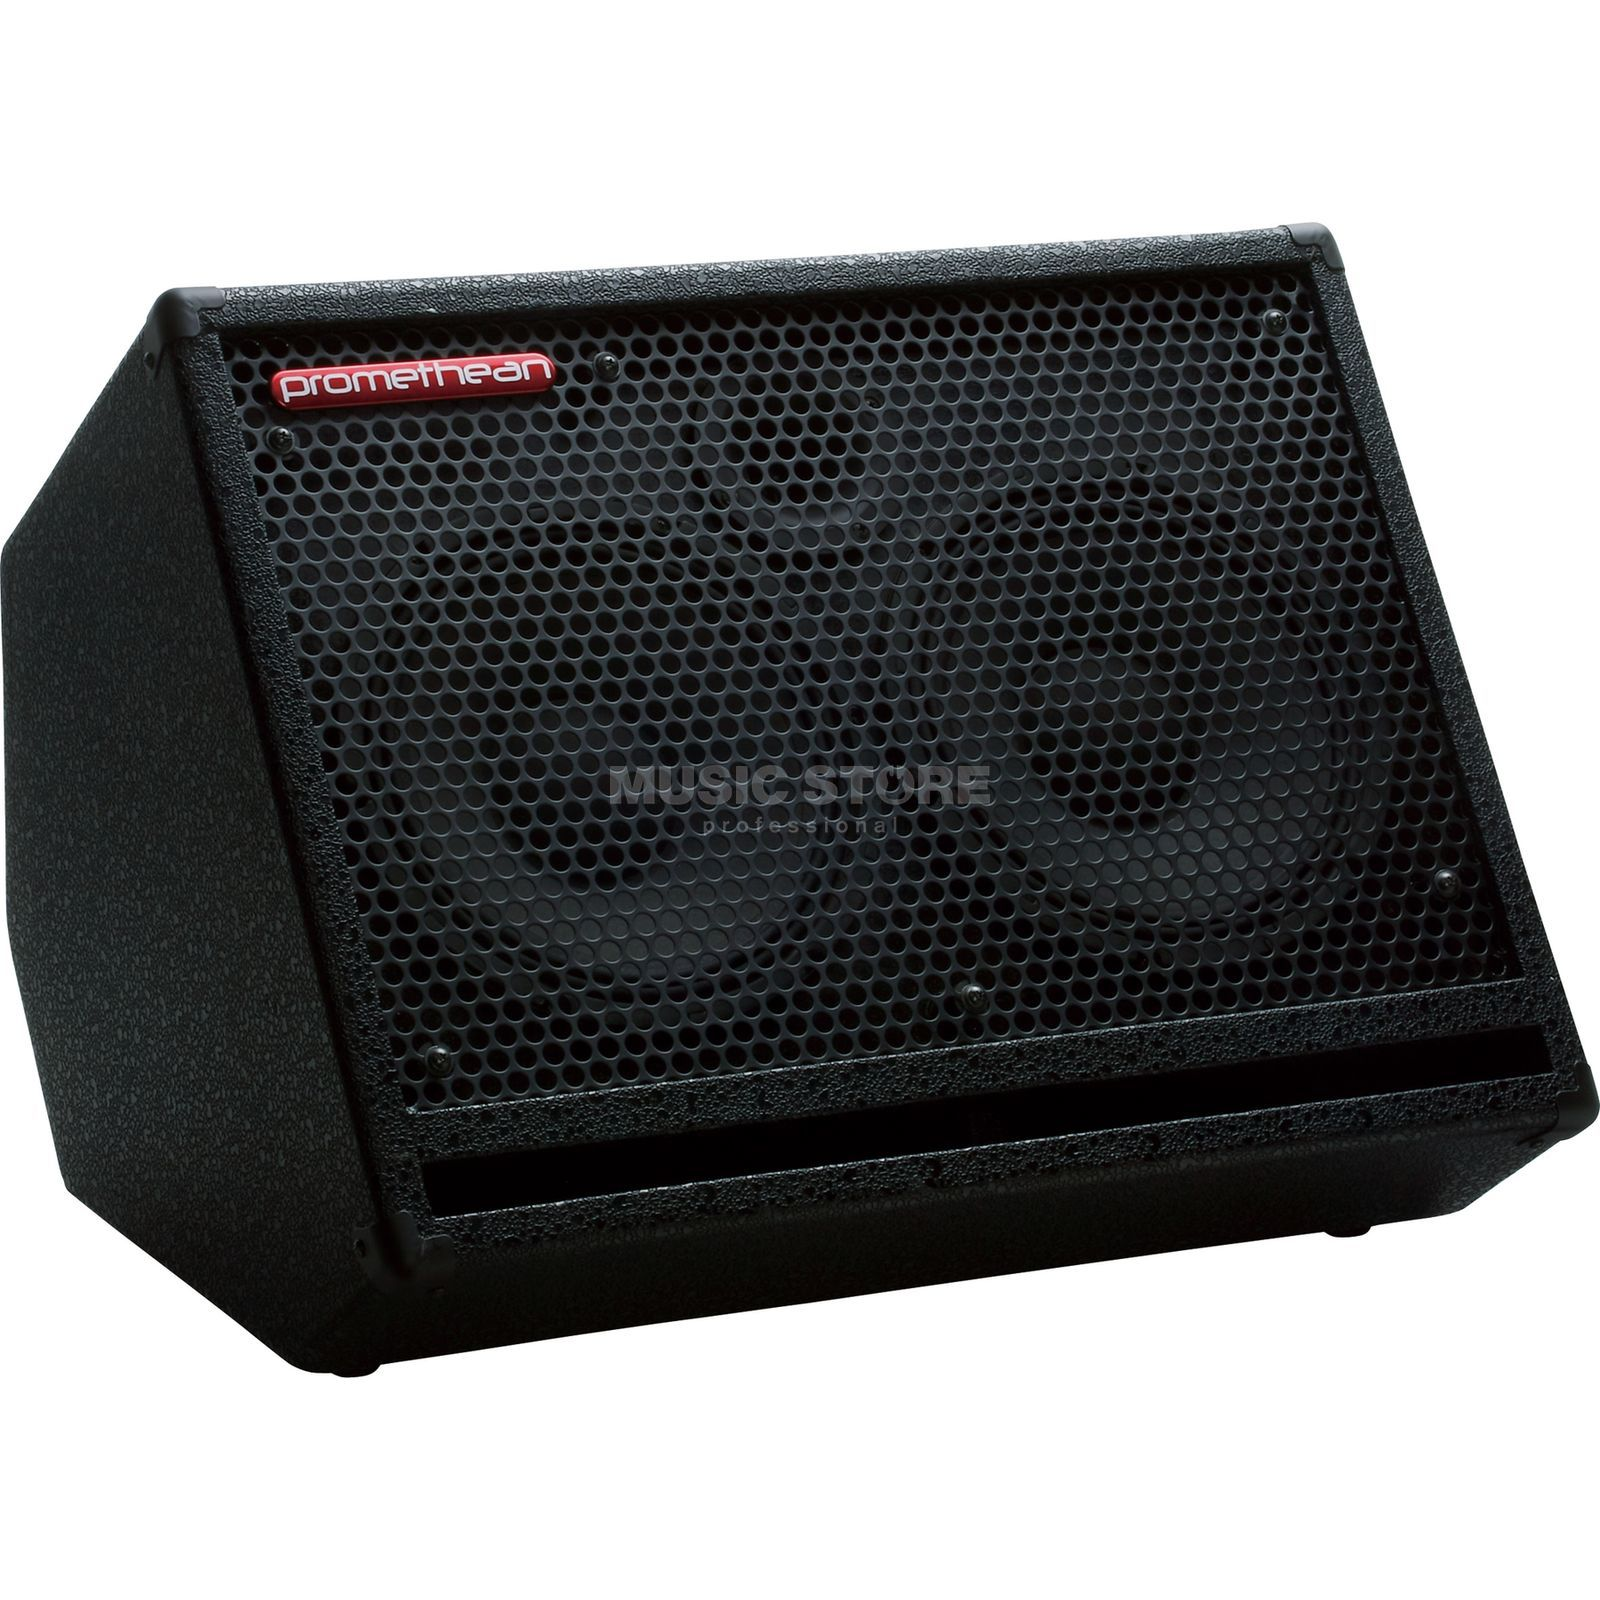 Ibanez P210KC Promethean Bass Speaker  Cabinet   Изображение товара